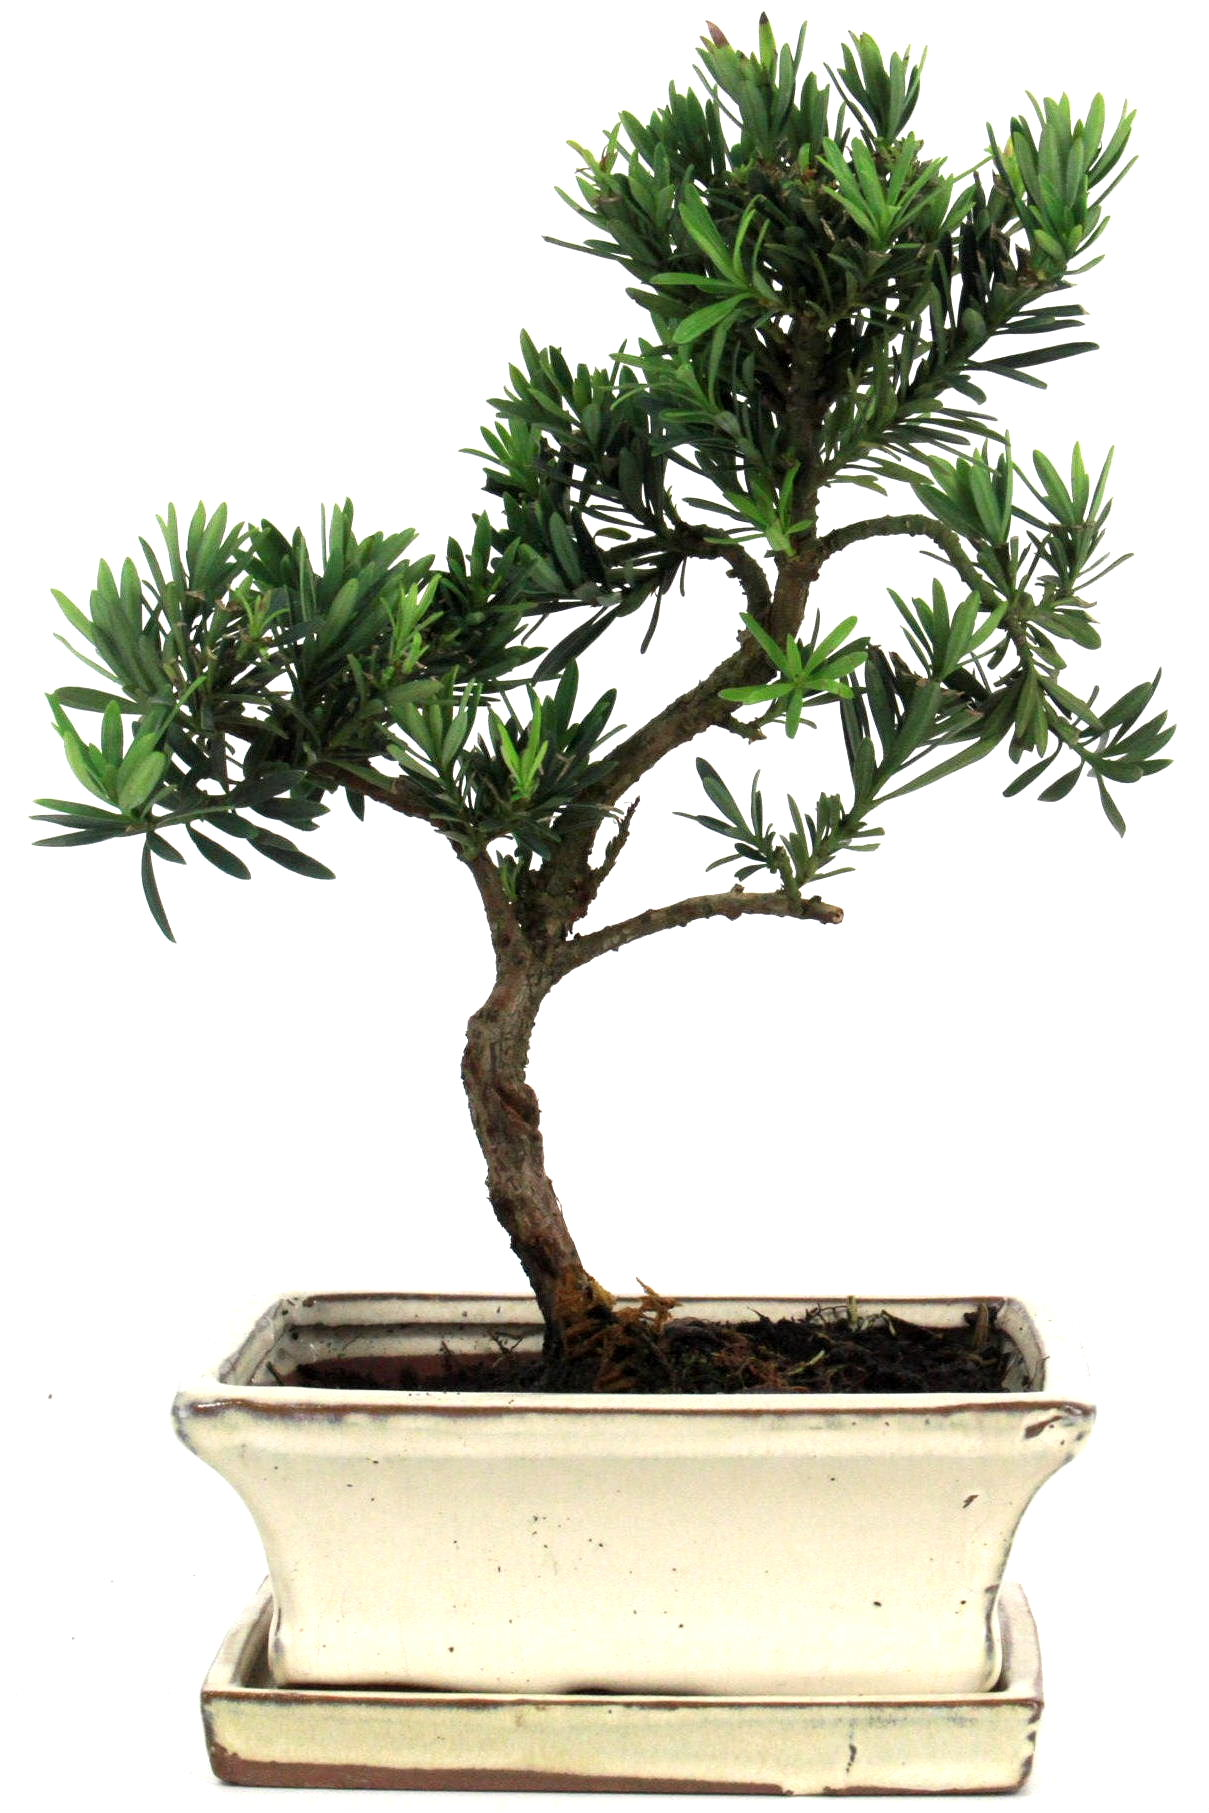 Steineibe bonsai 30 35 cm 1639 bei oyaki bonsai kaufen for Bonsai onlineshop